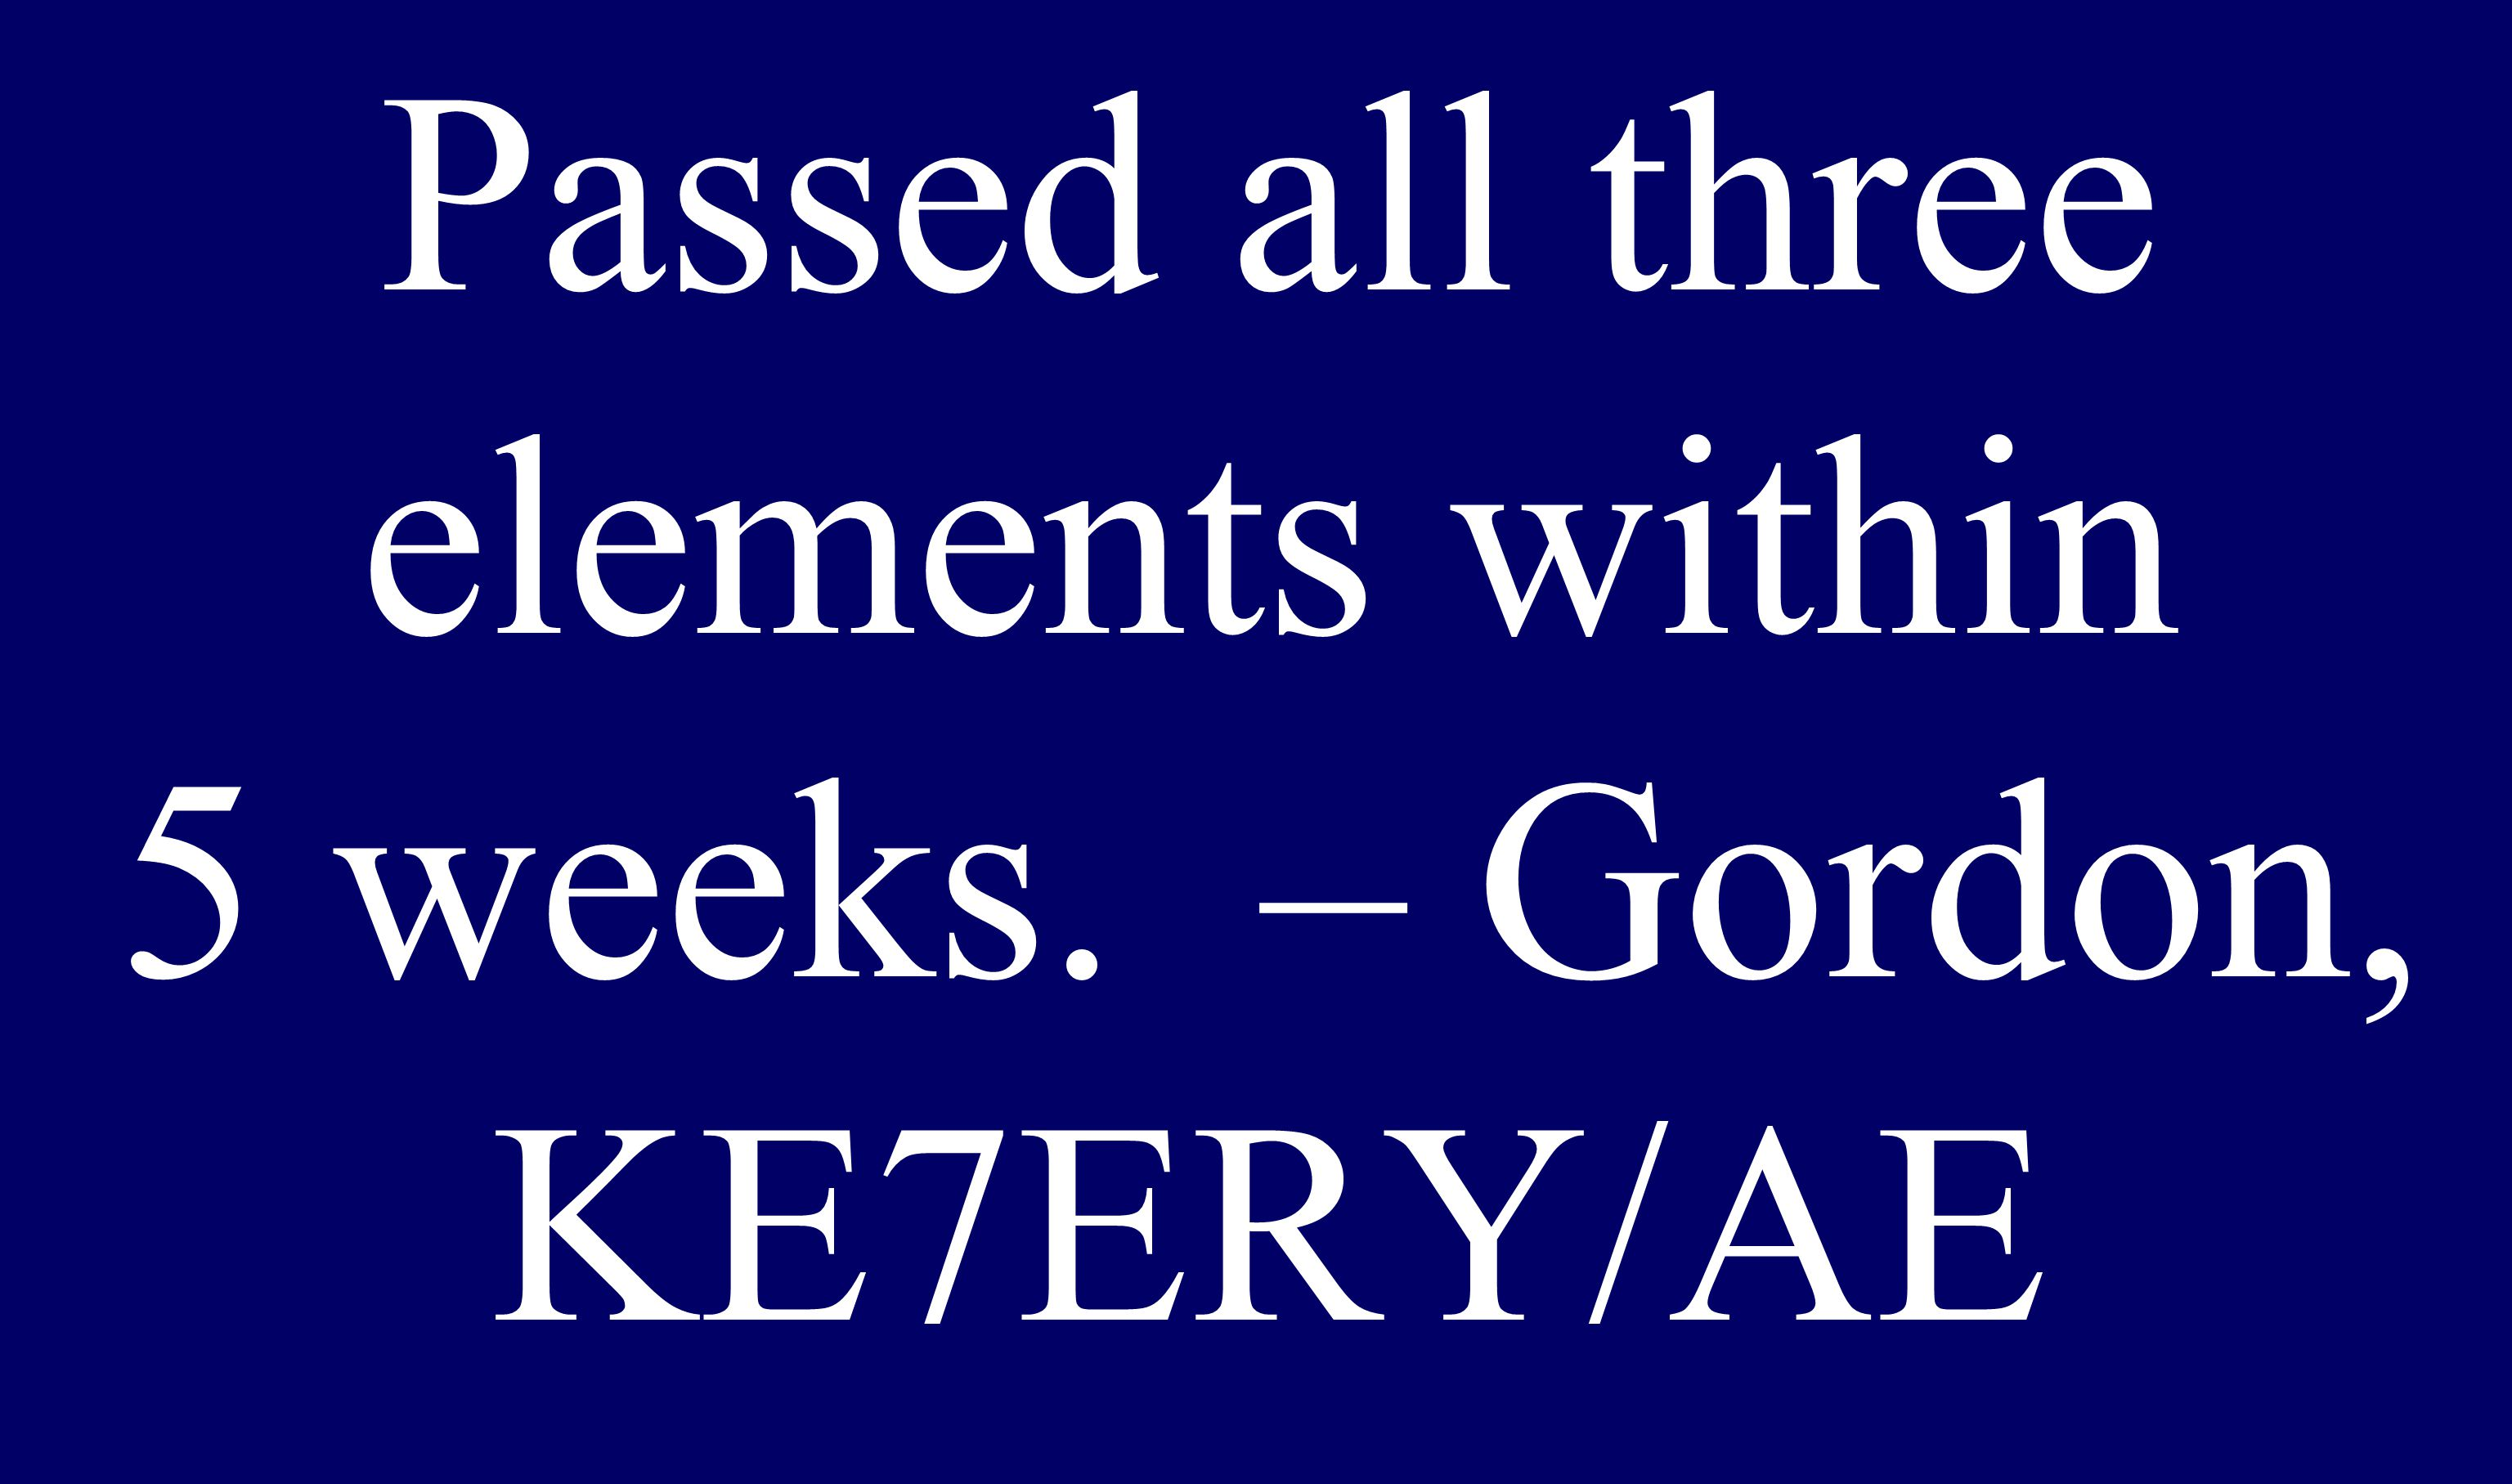 Passed all three elements within 5 weeks. – Gordon, KE7ERY/AE